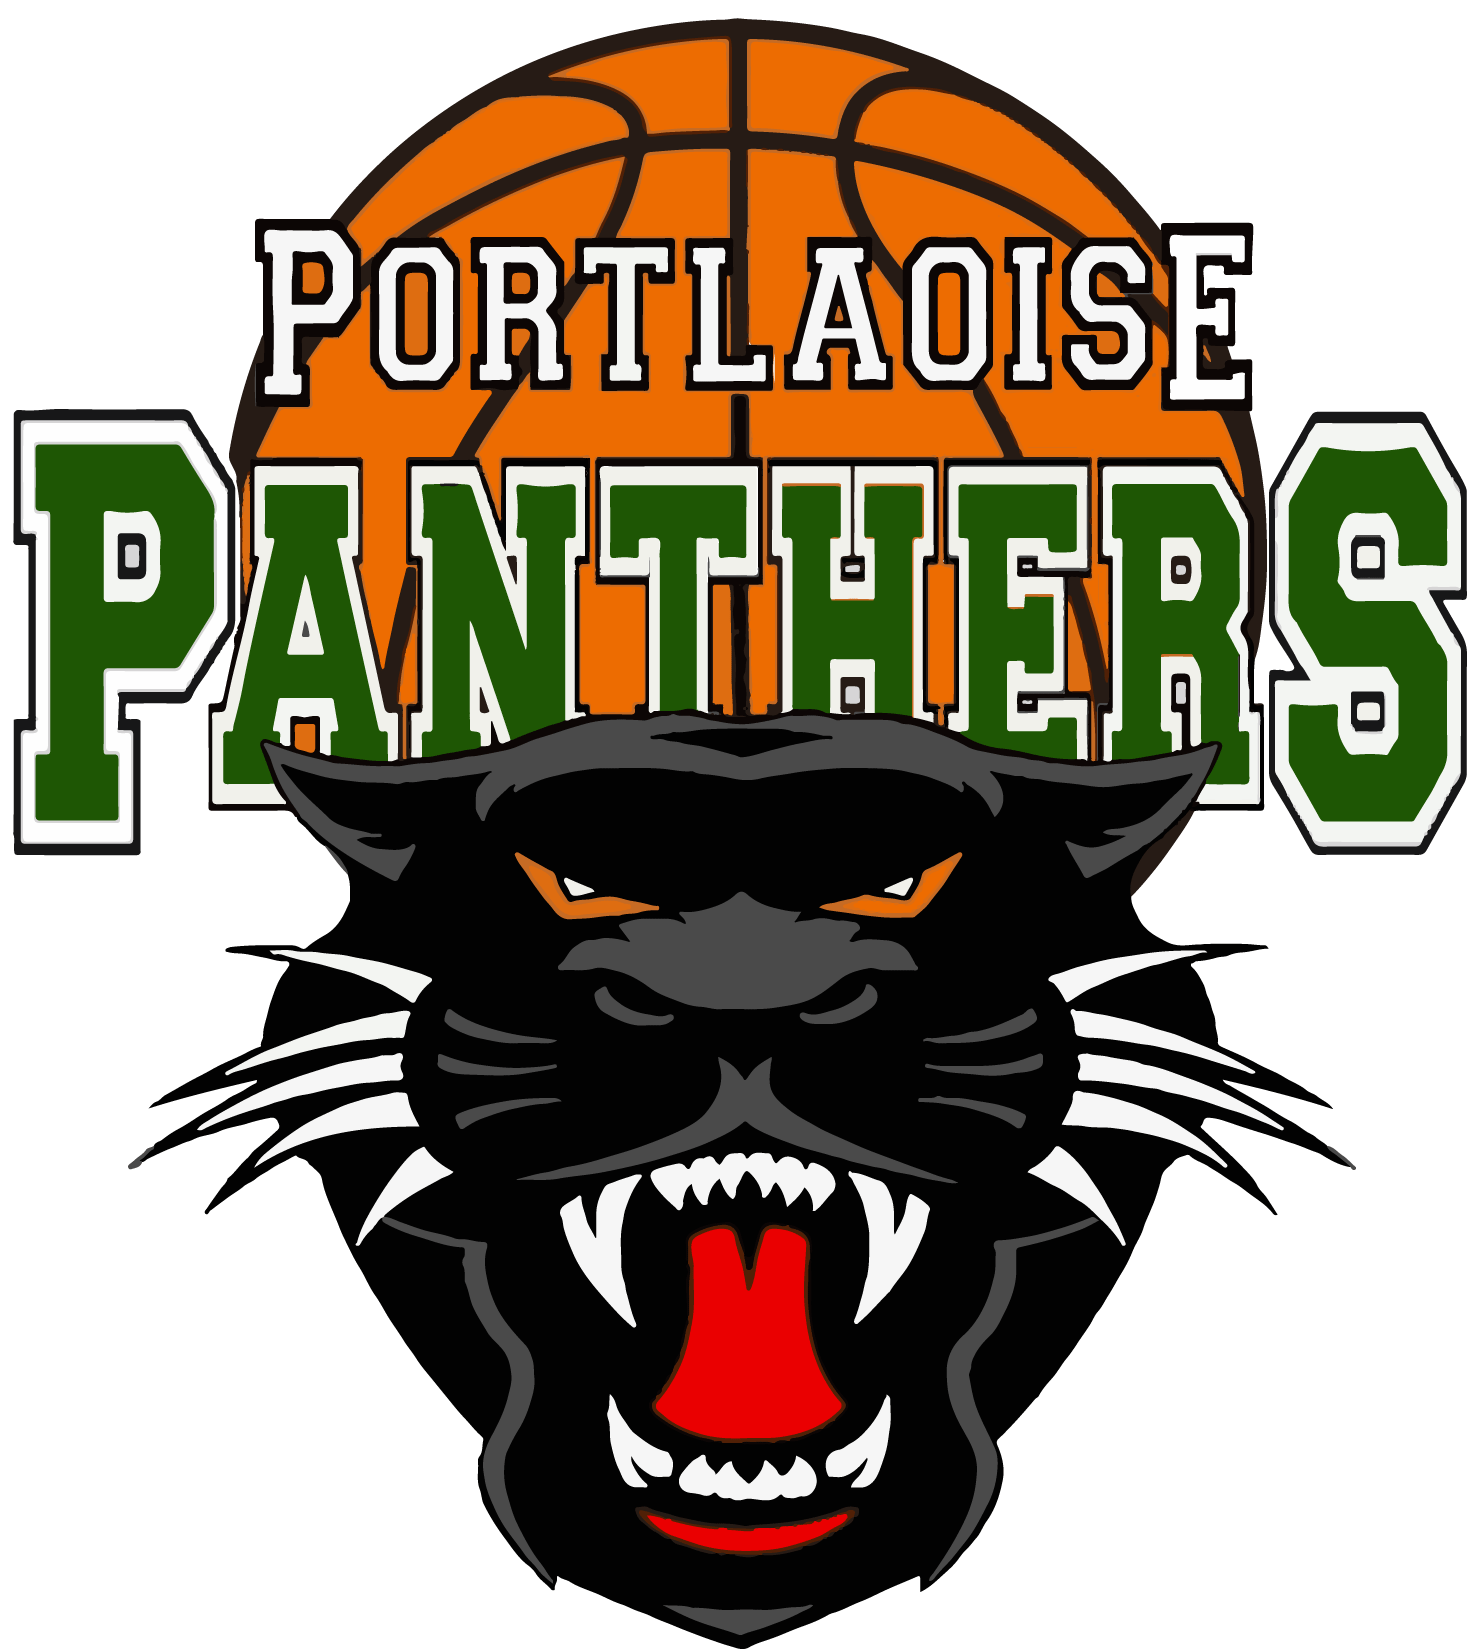 Portlaoise Panthers Basketball Club